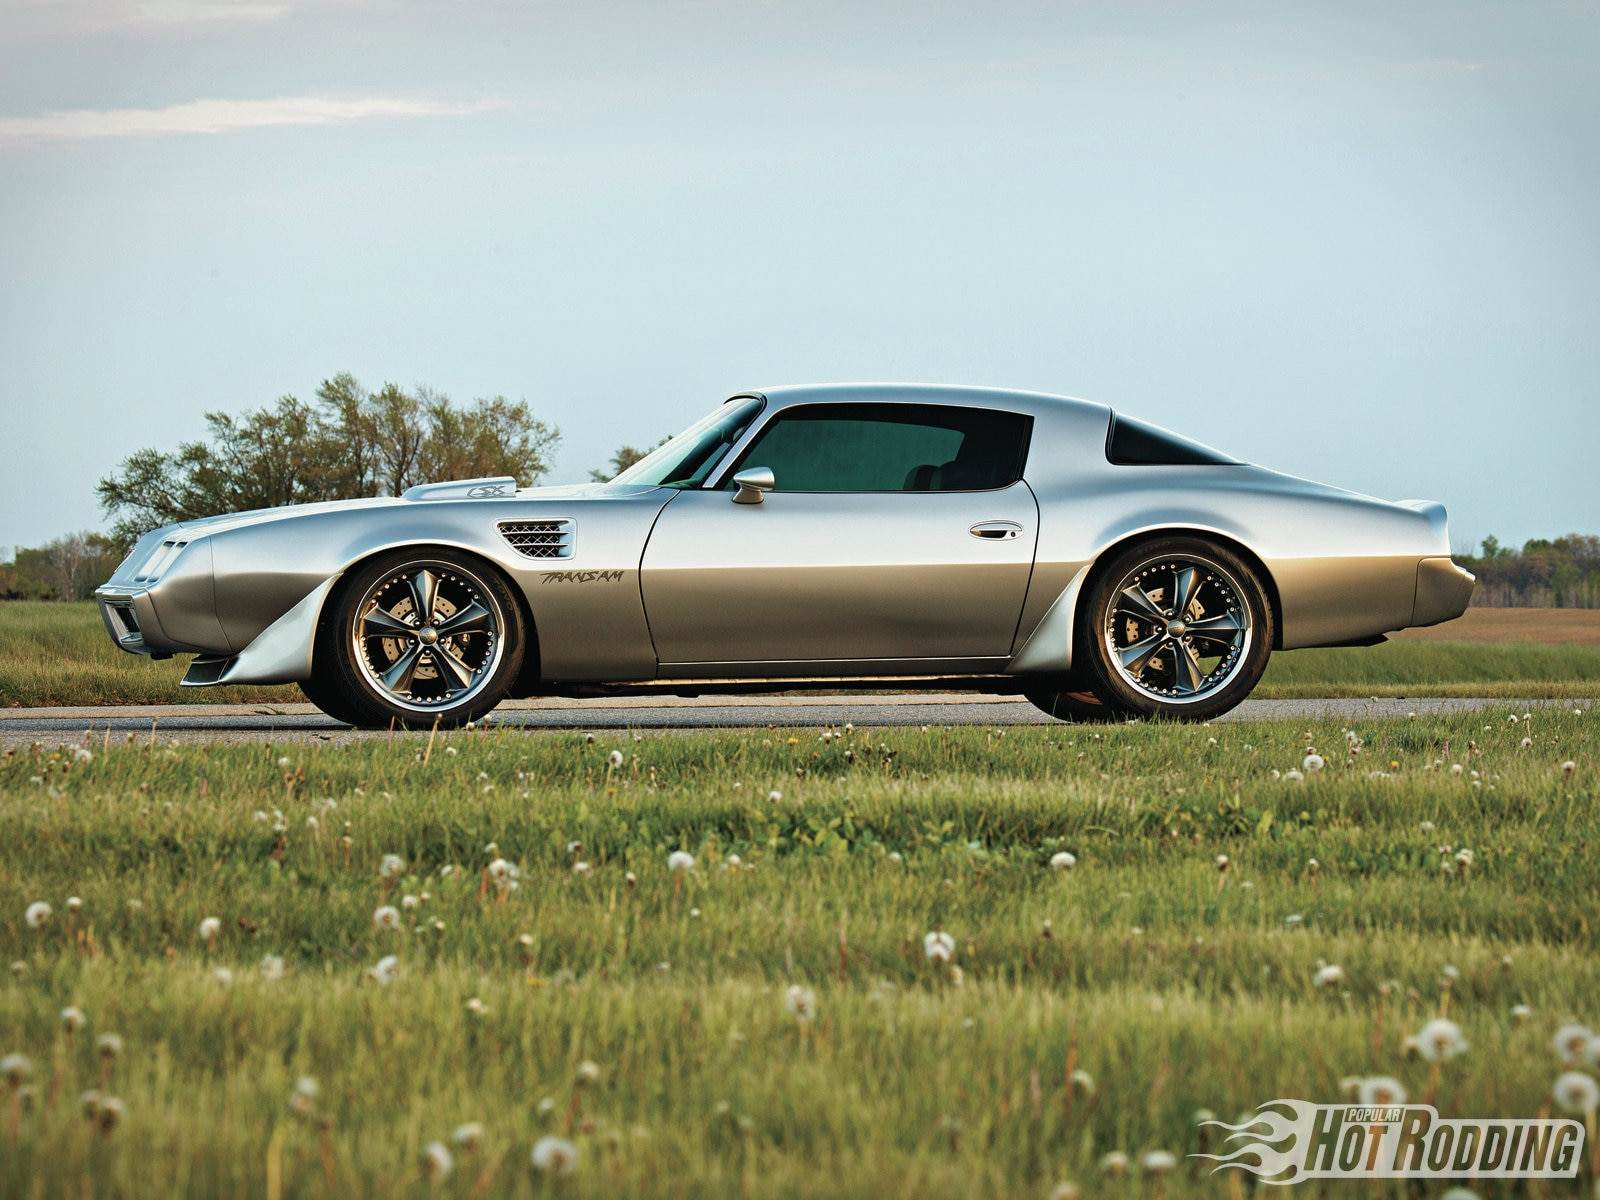 Pontiac transam photo - 6